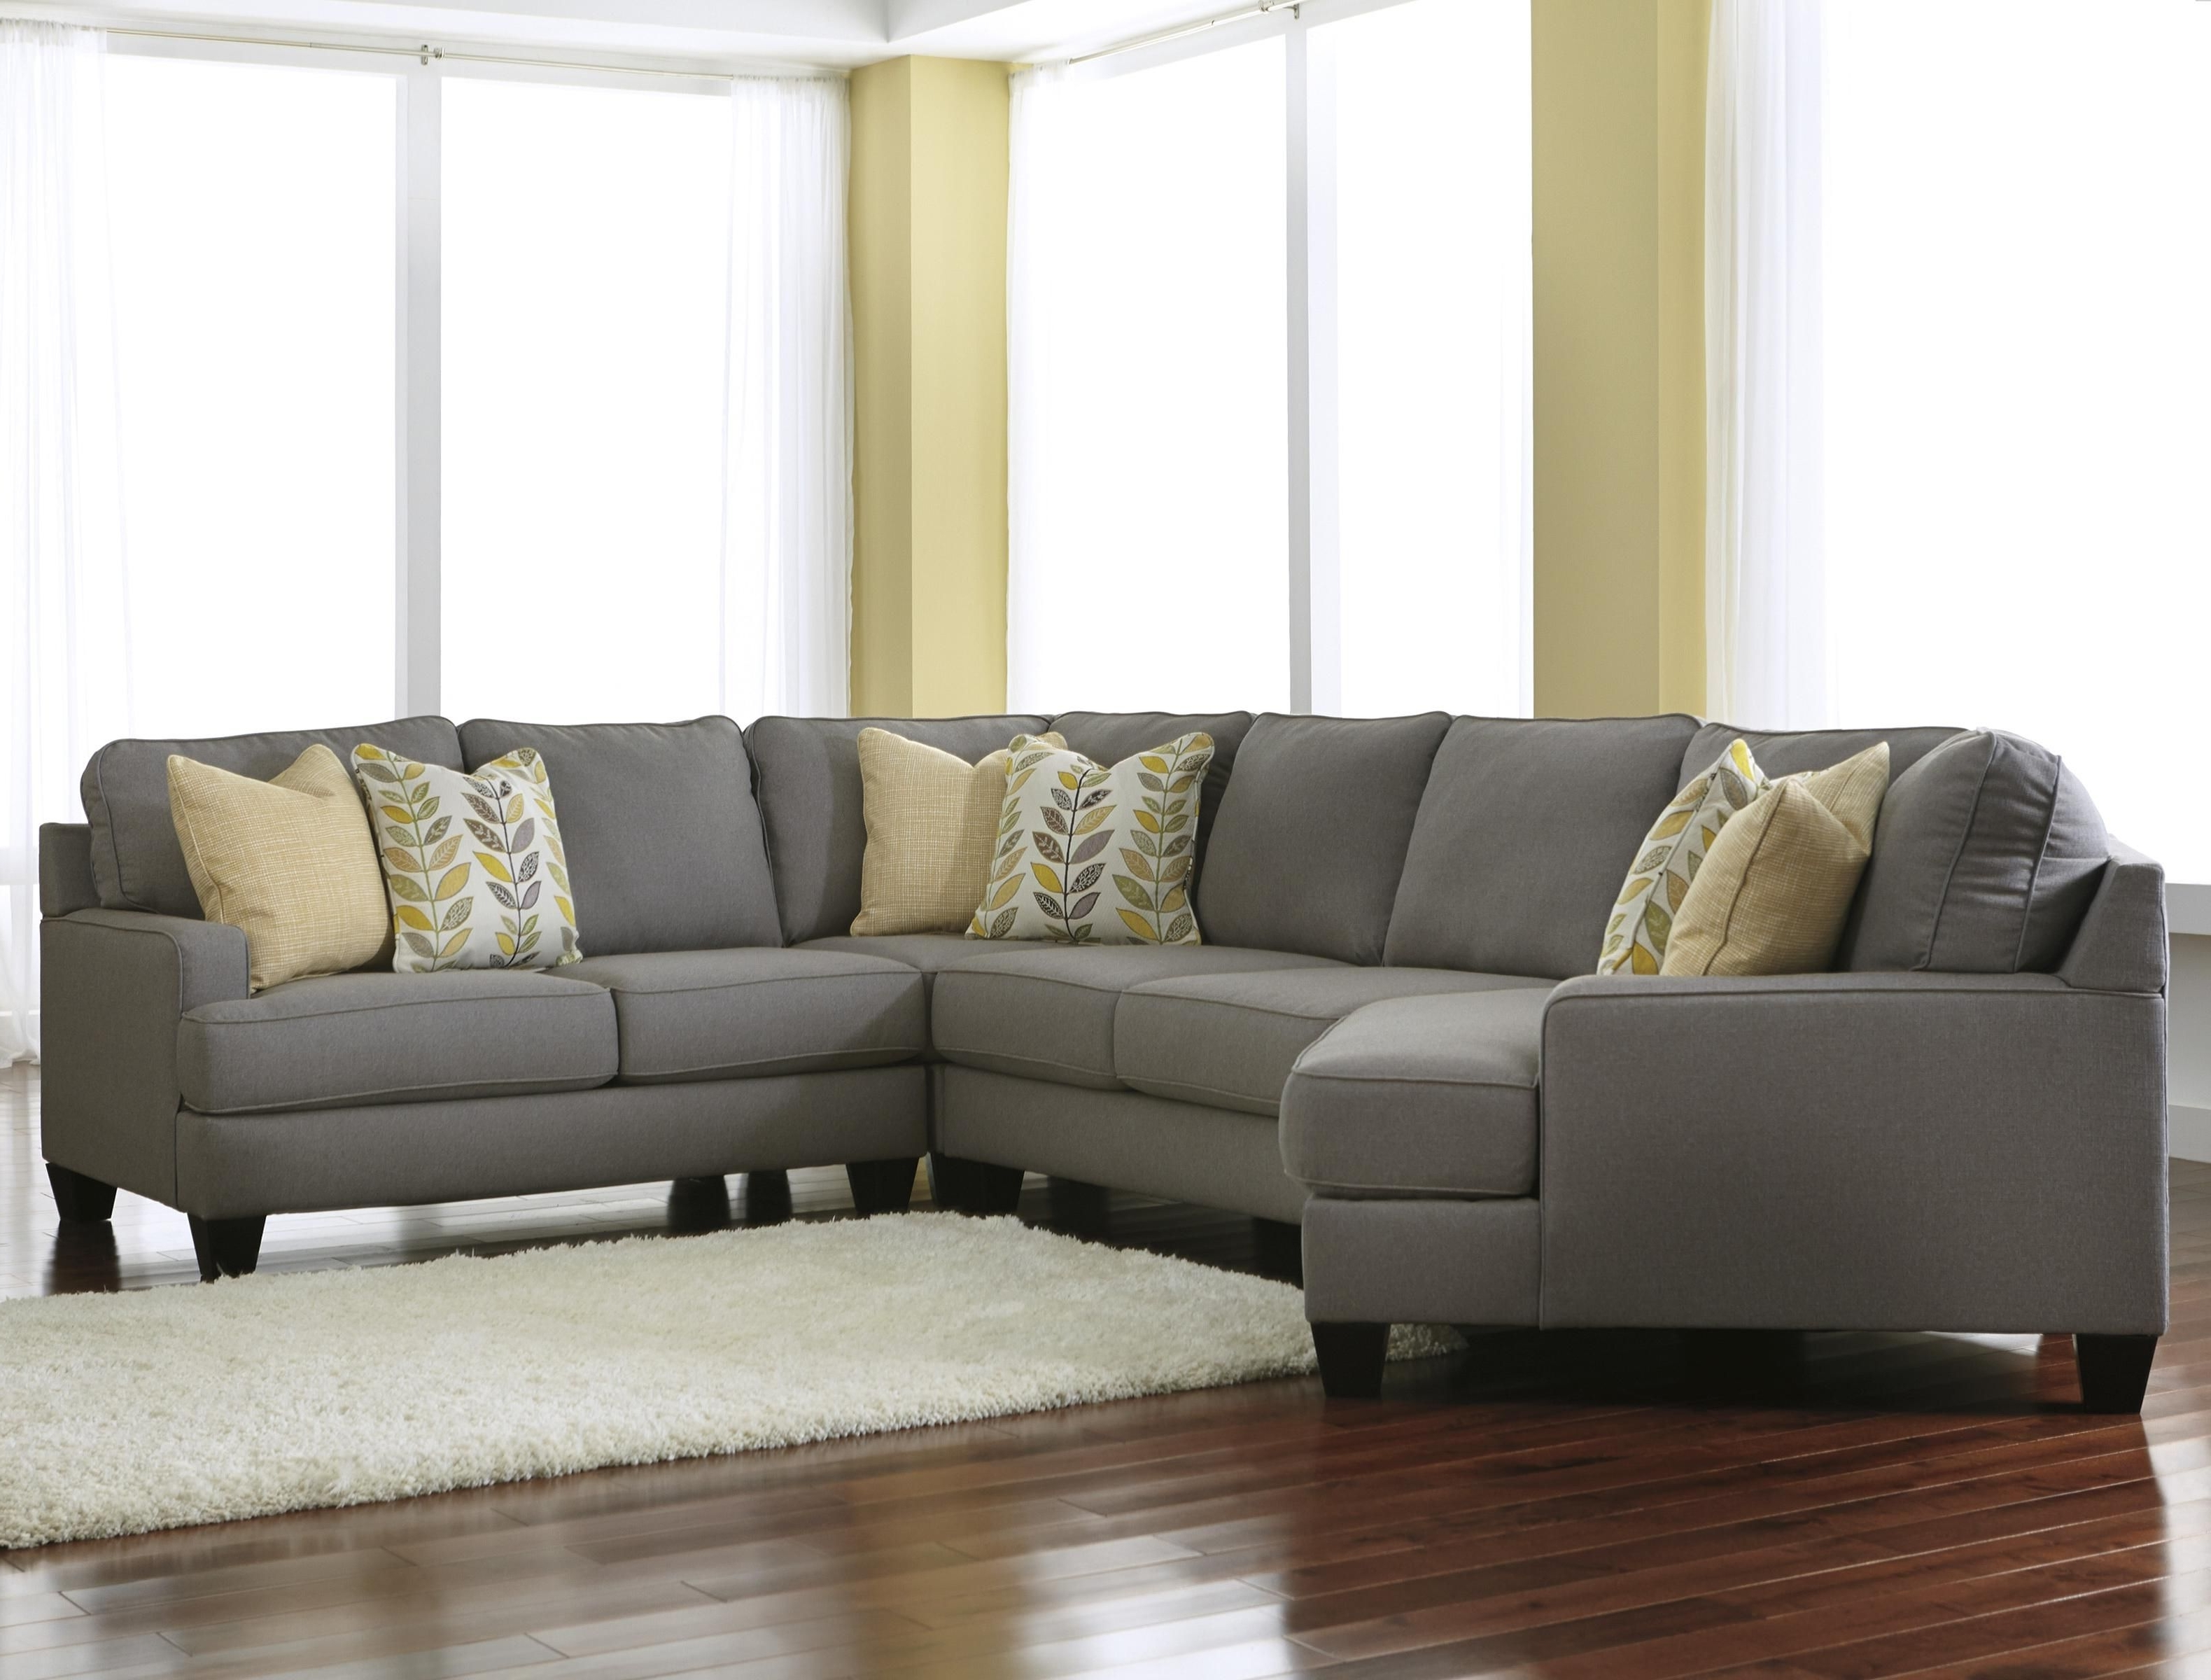 Chamberly – Alloy Modern 4 Piece Sectional Sofa With Left Cuddler Throughout Famous Johnson City Tn Sectional Sofas (View 3 of 20)